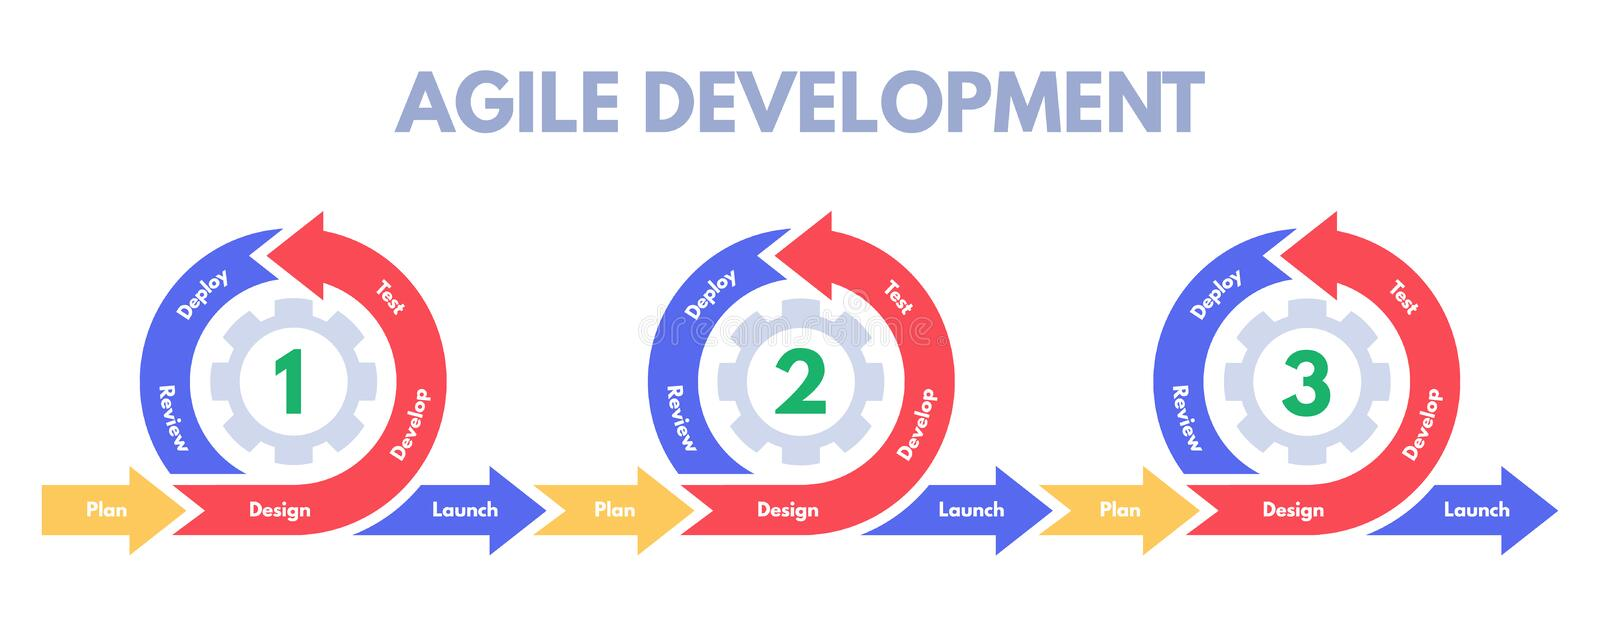 Agile development methodology. Software developments sprint, develop process management and scrum sprints vector stock illustration